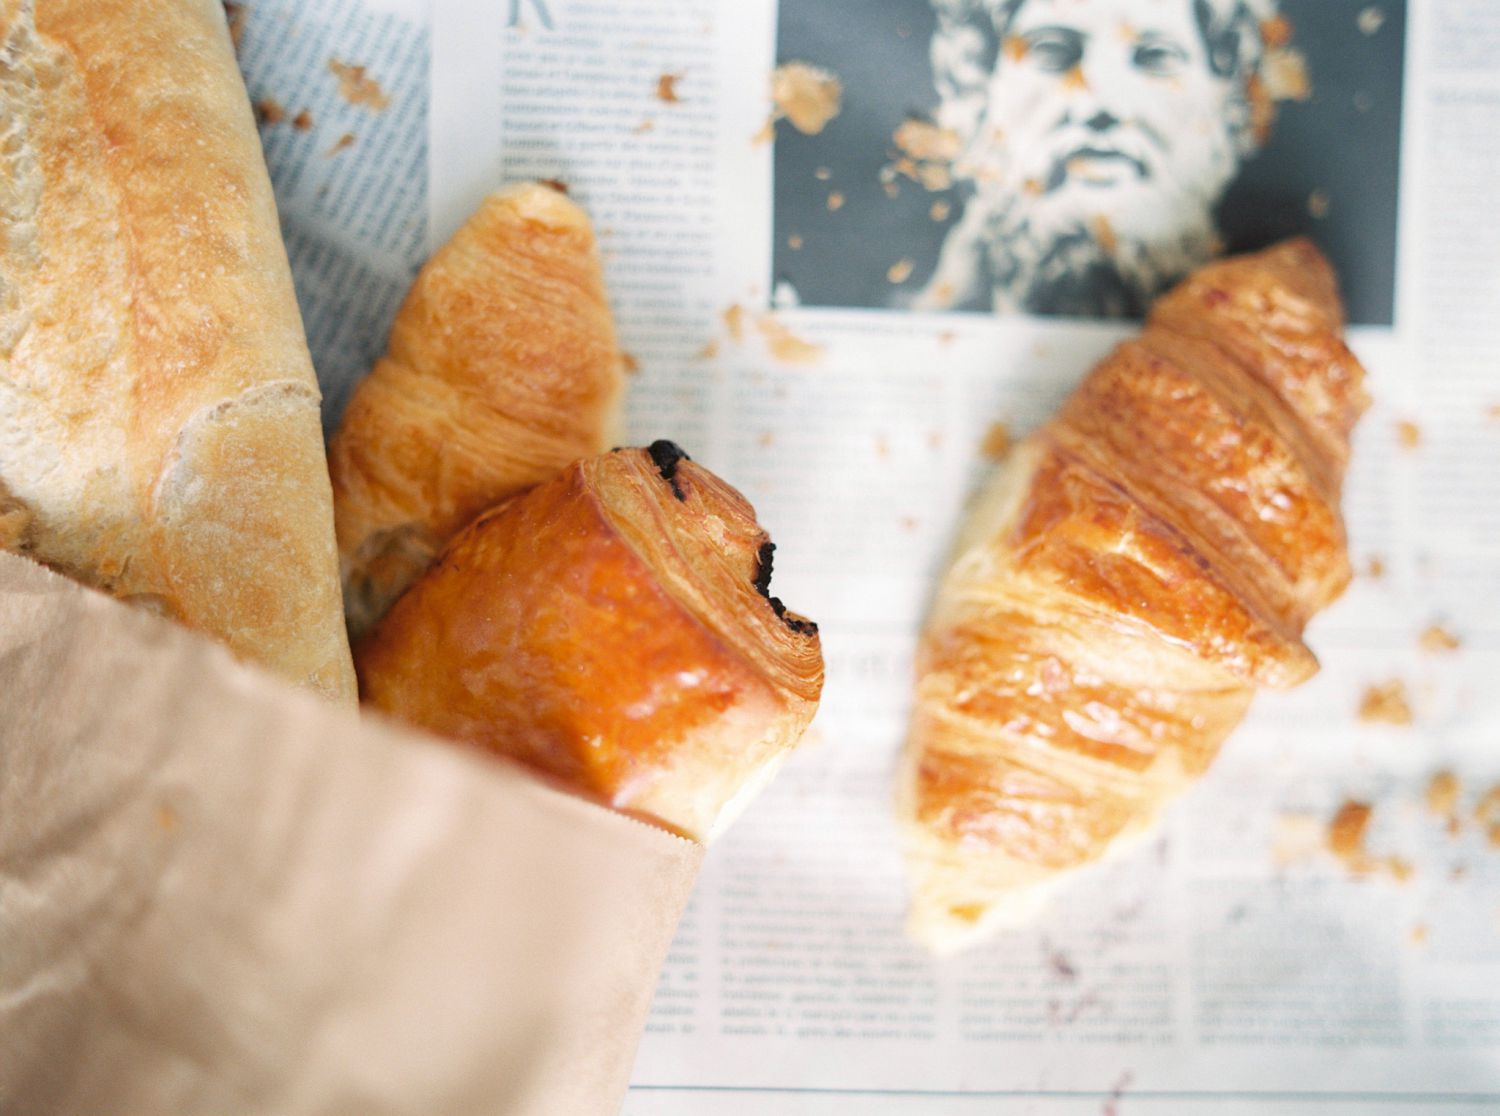 Paris best croissants